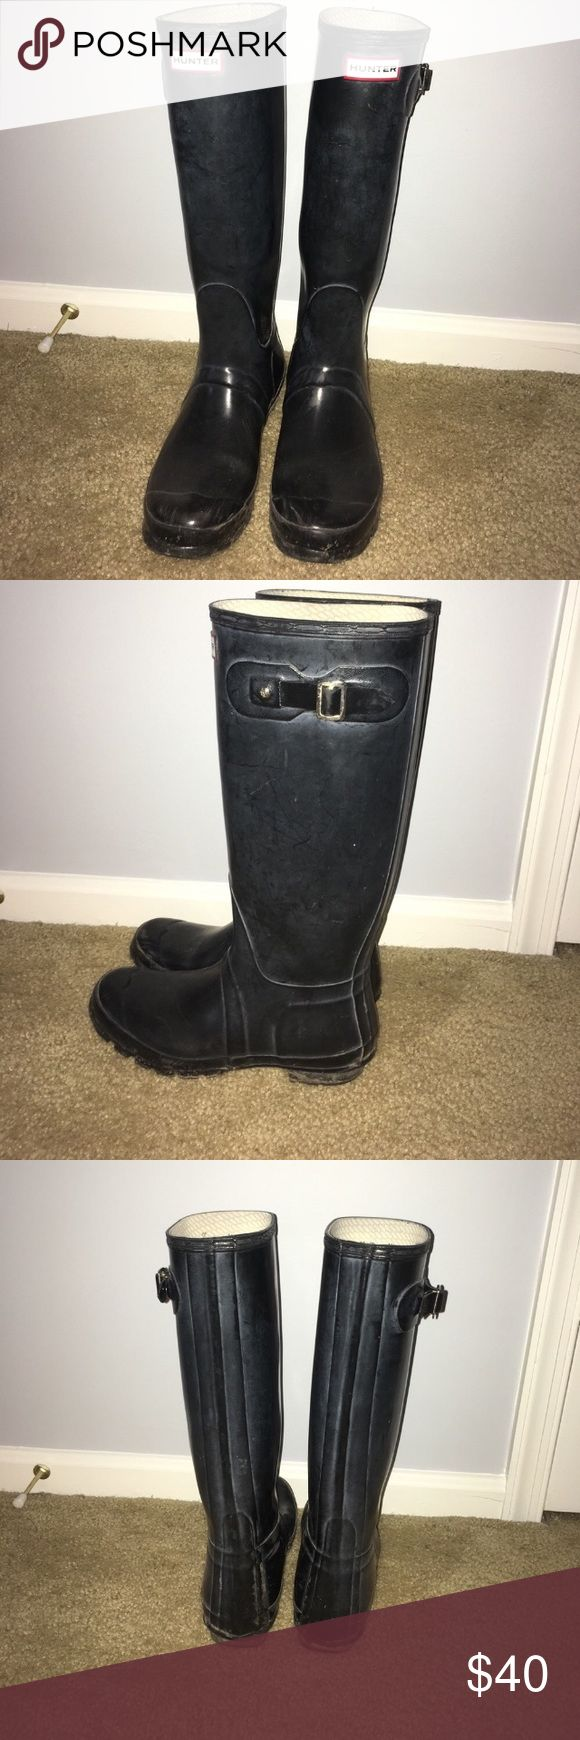 Black Hunter Boots These are Women's size 10/ Men's size 9 original gloss Hunter Boots! They are in good condition as shown in the pictures! Hunter Boots Shoes Winter & Rain Boots